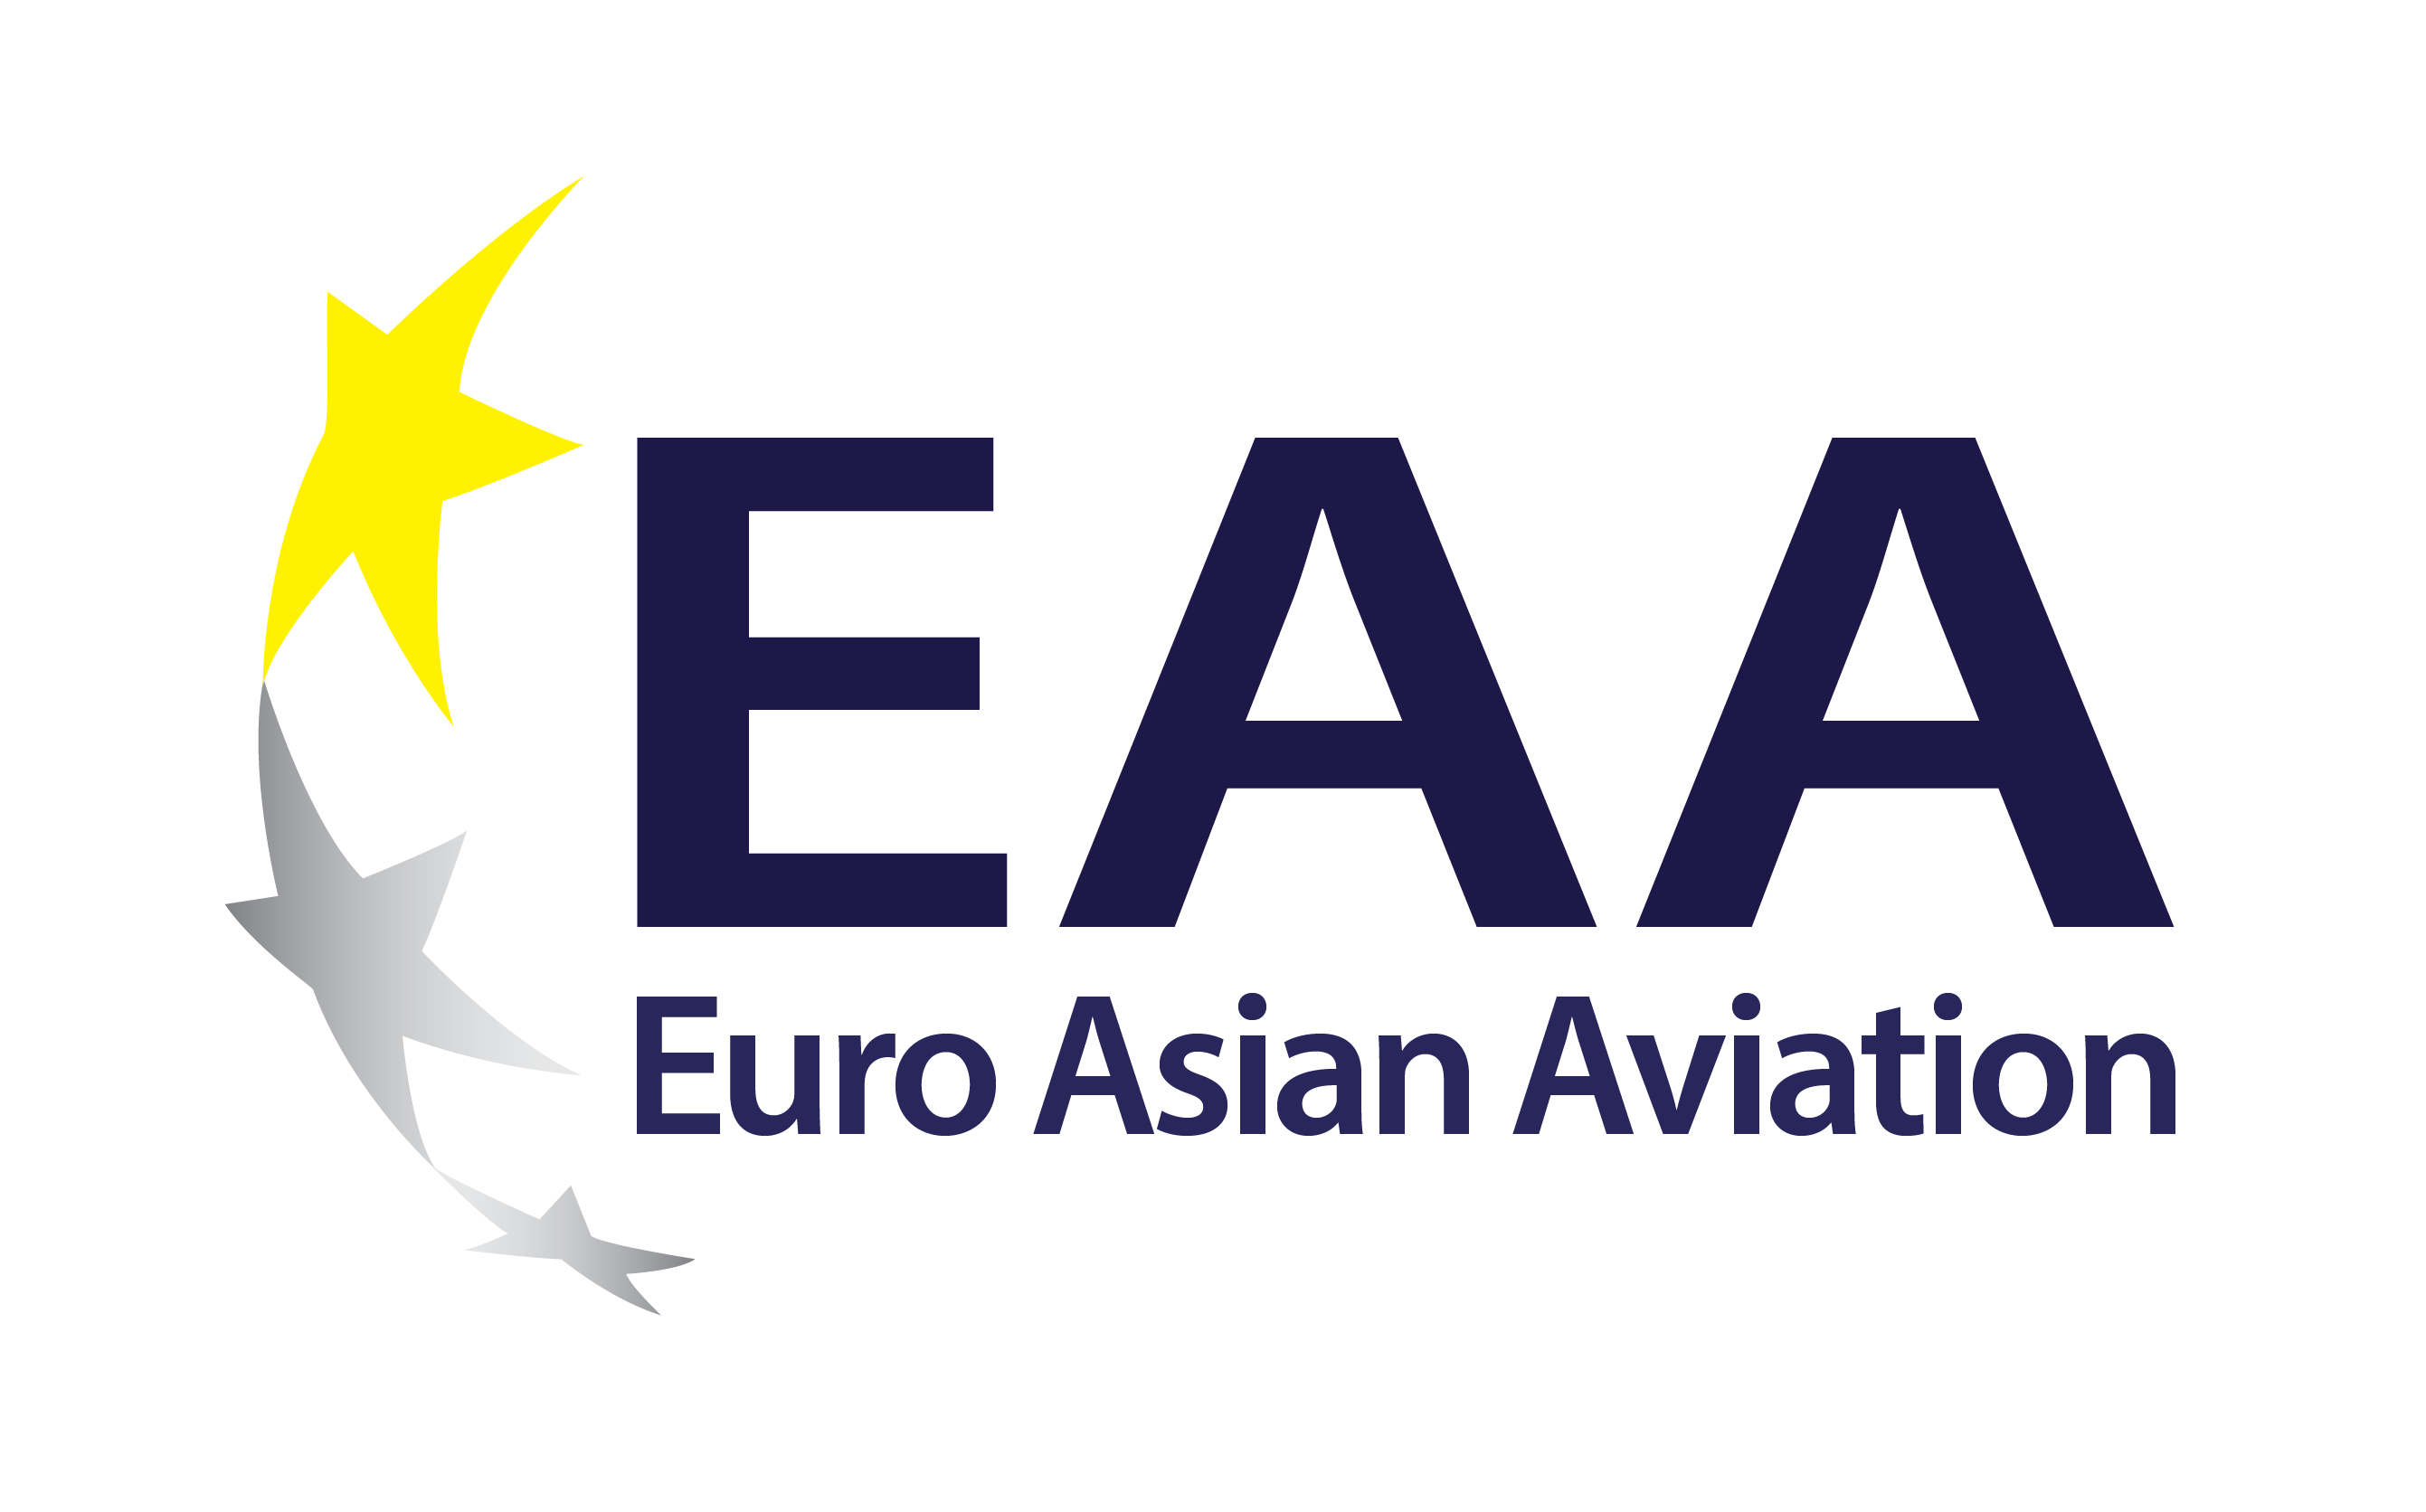 Euro Asian Aviation